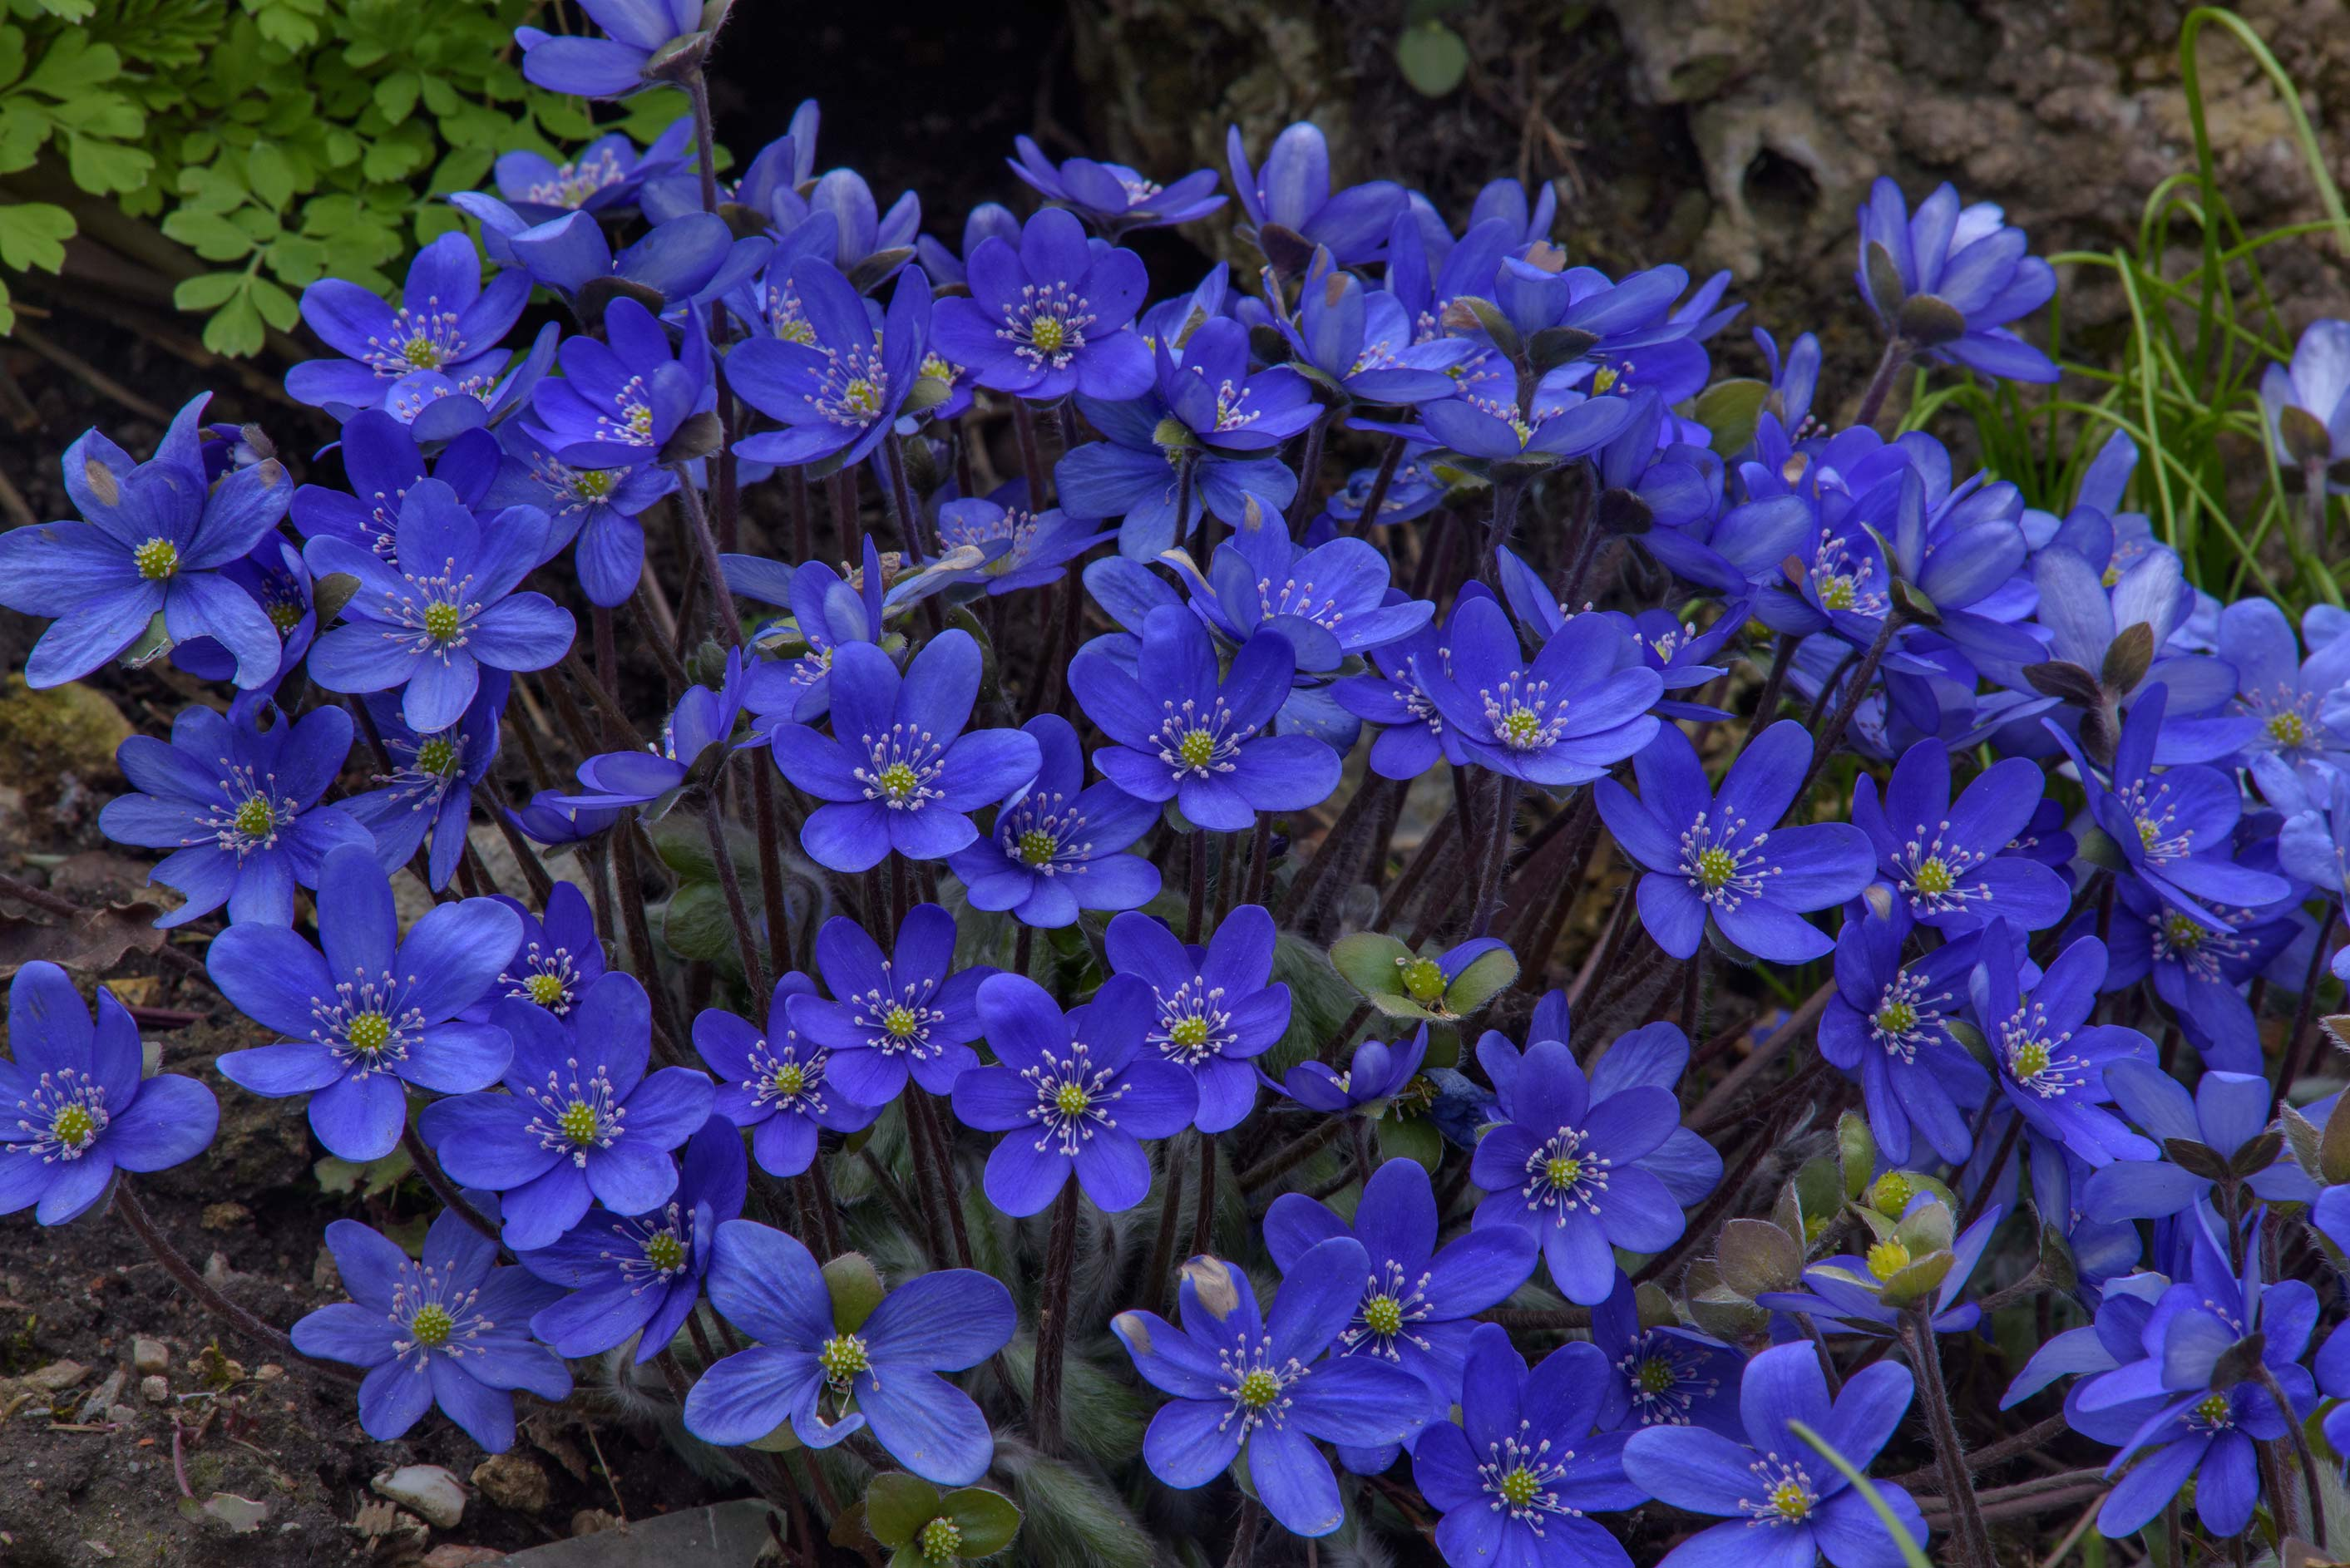 Masses of blue flowers of Liverleaf (Hepatica...Institute. St.Petersburg, Russia